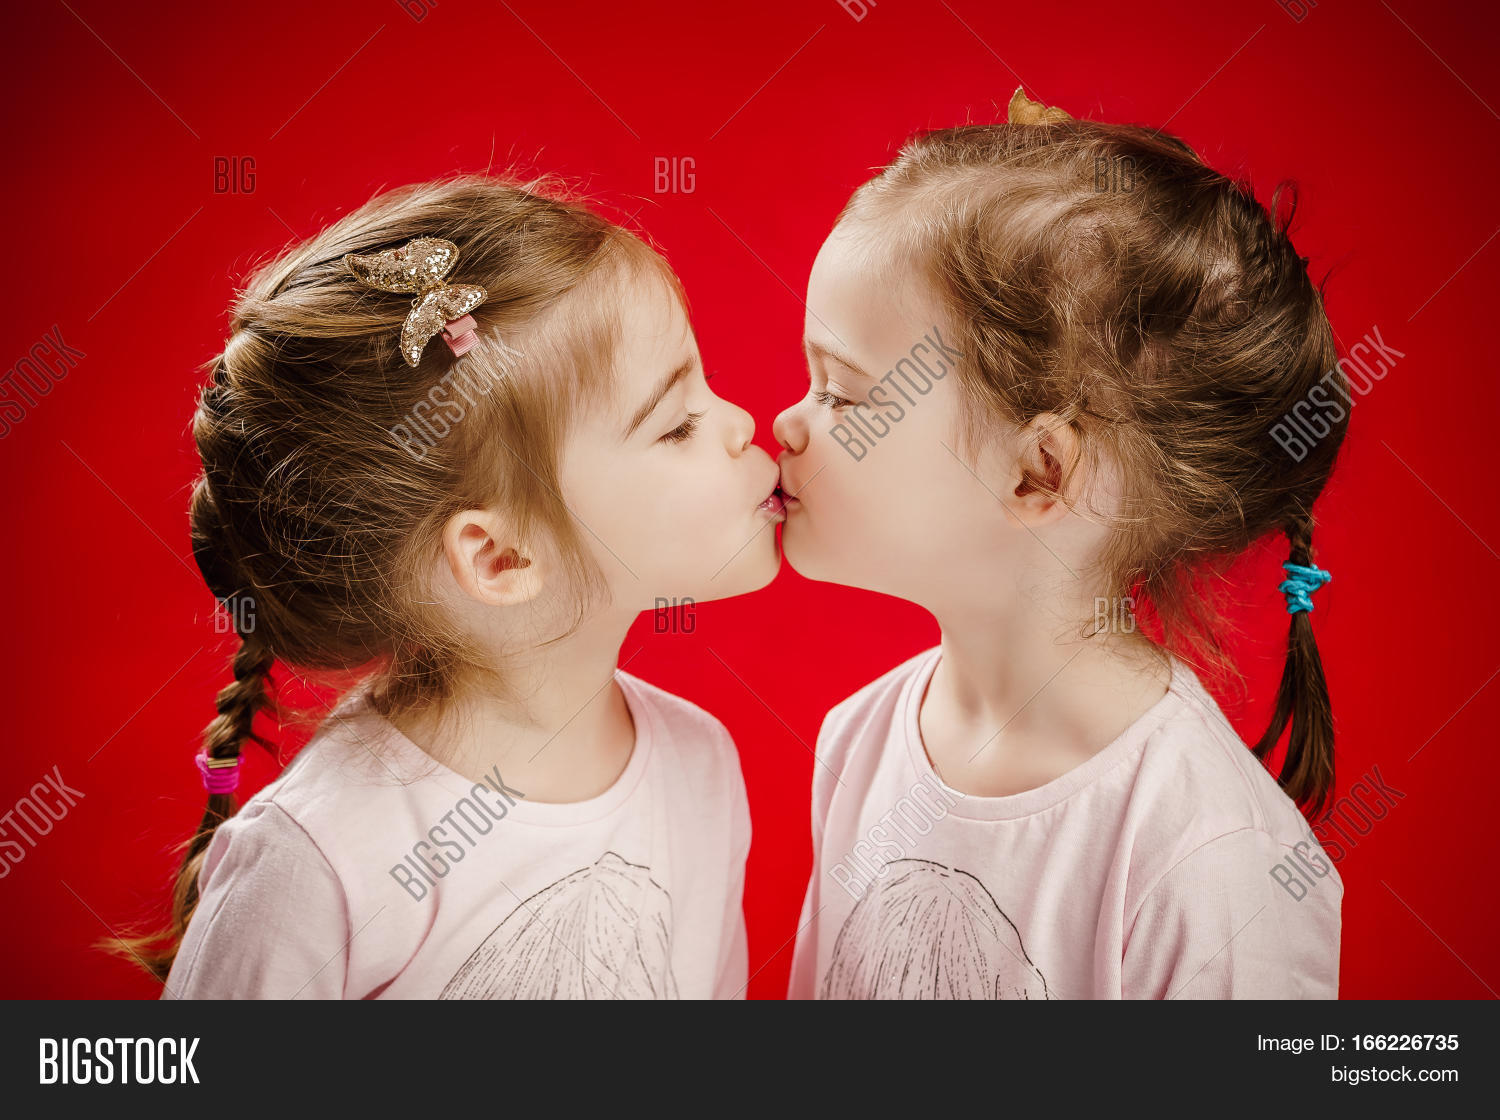 Twins Kissing Each Other